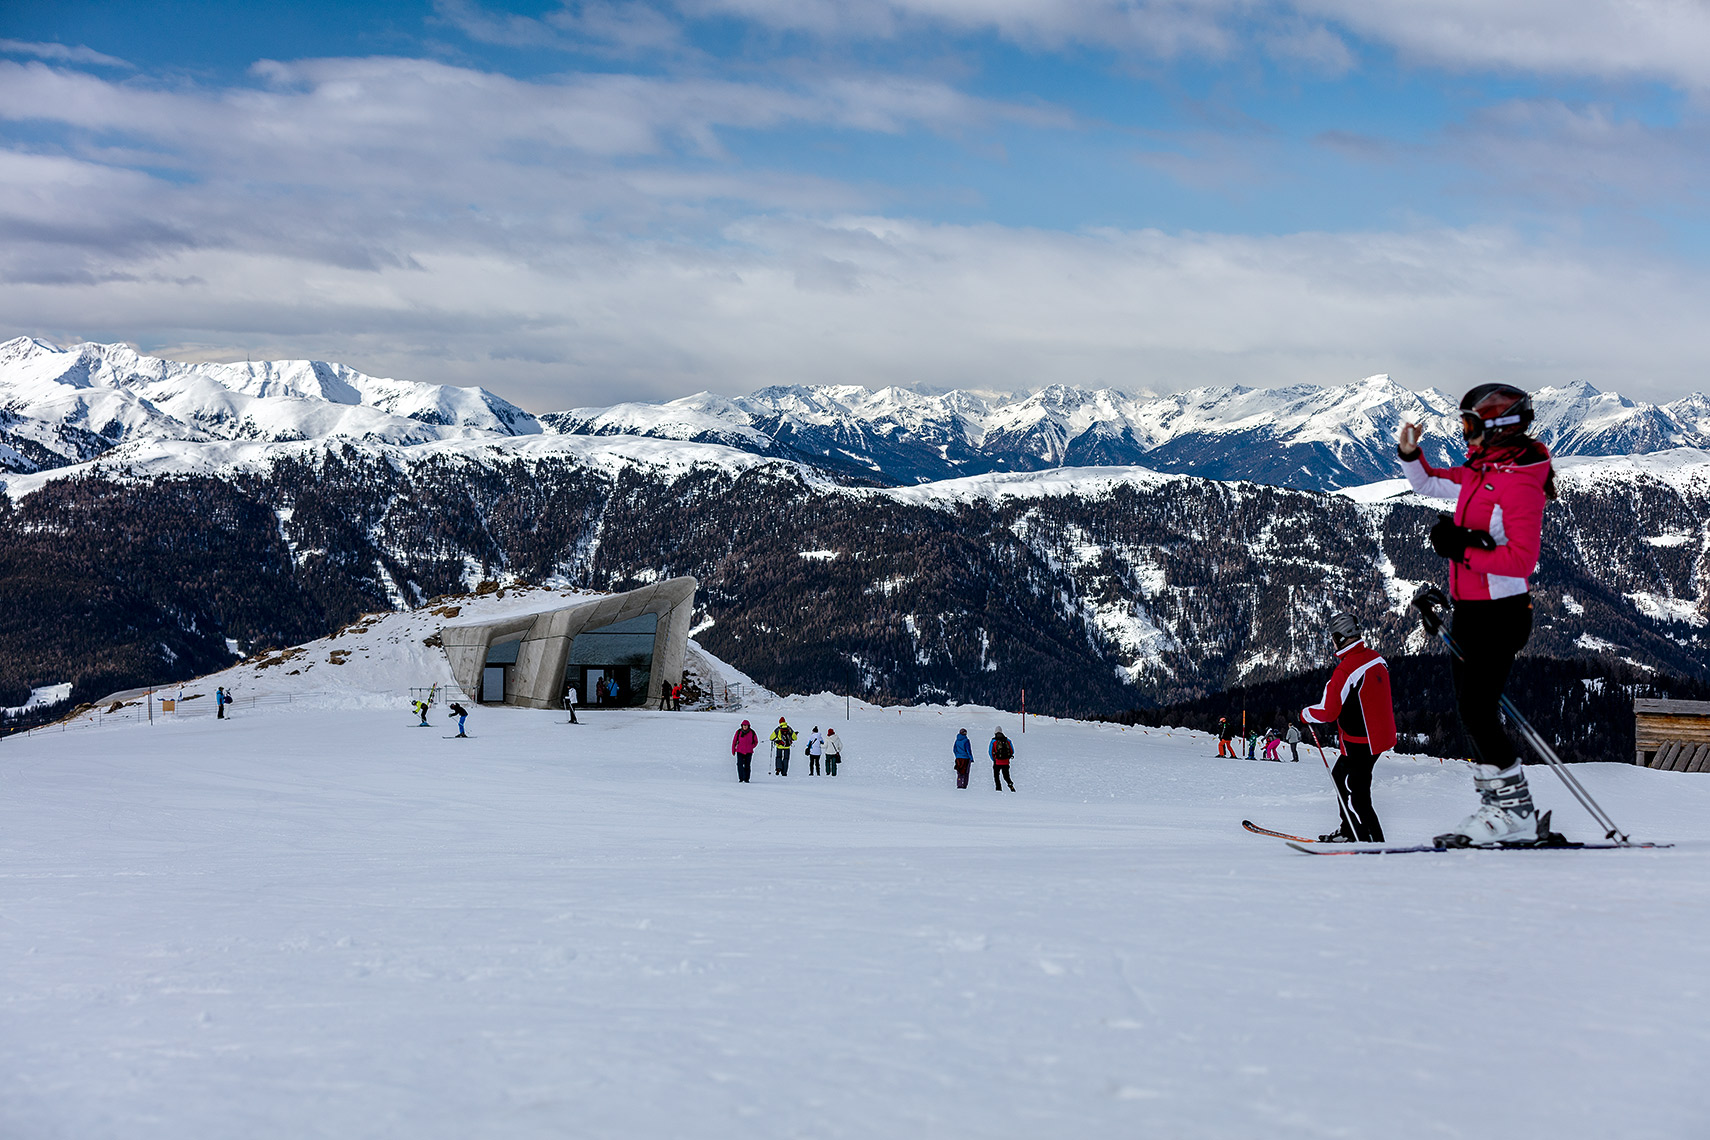 Messner museum and skiers, Peter A. Sellar Architectural Photographer